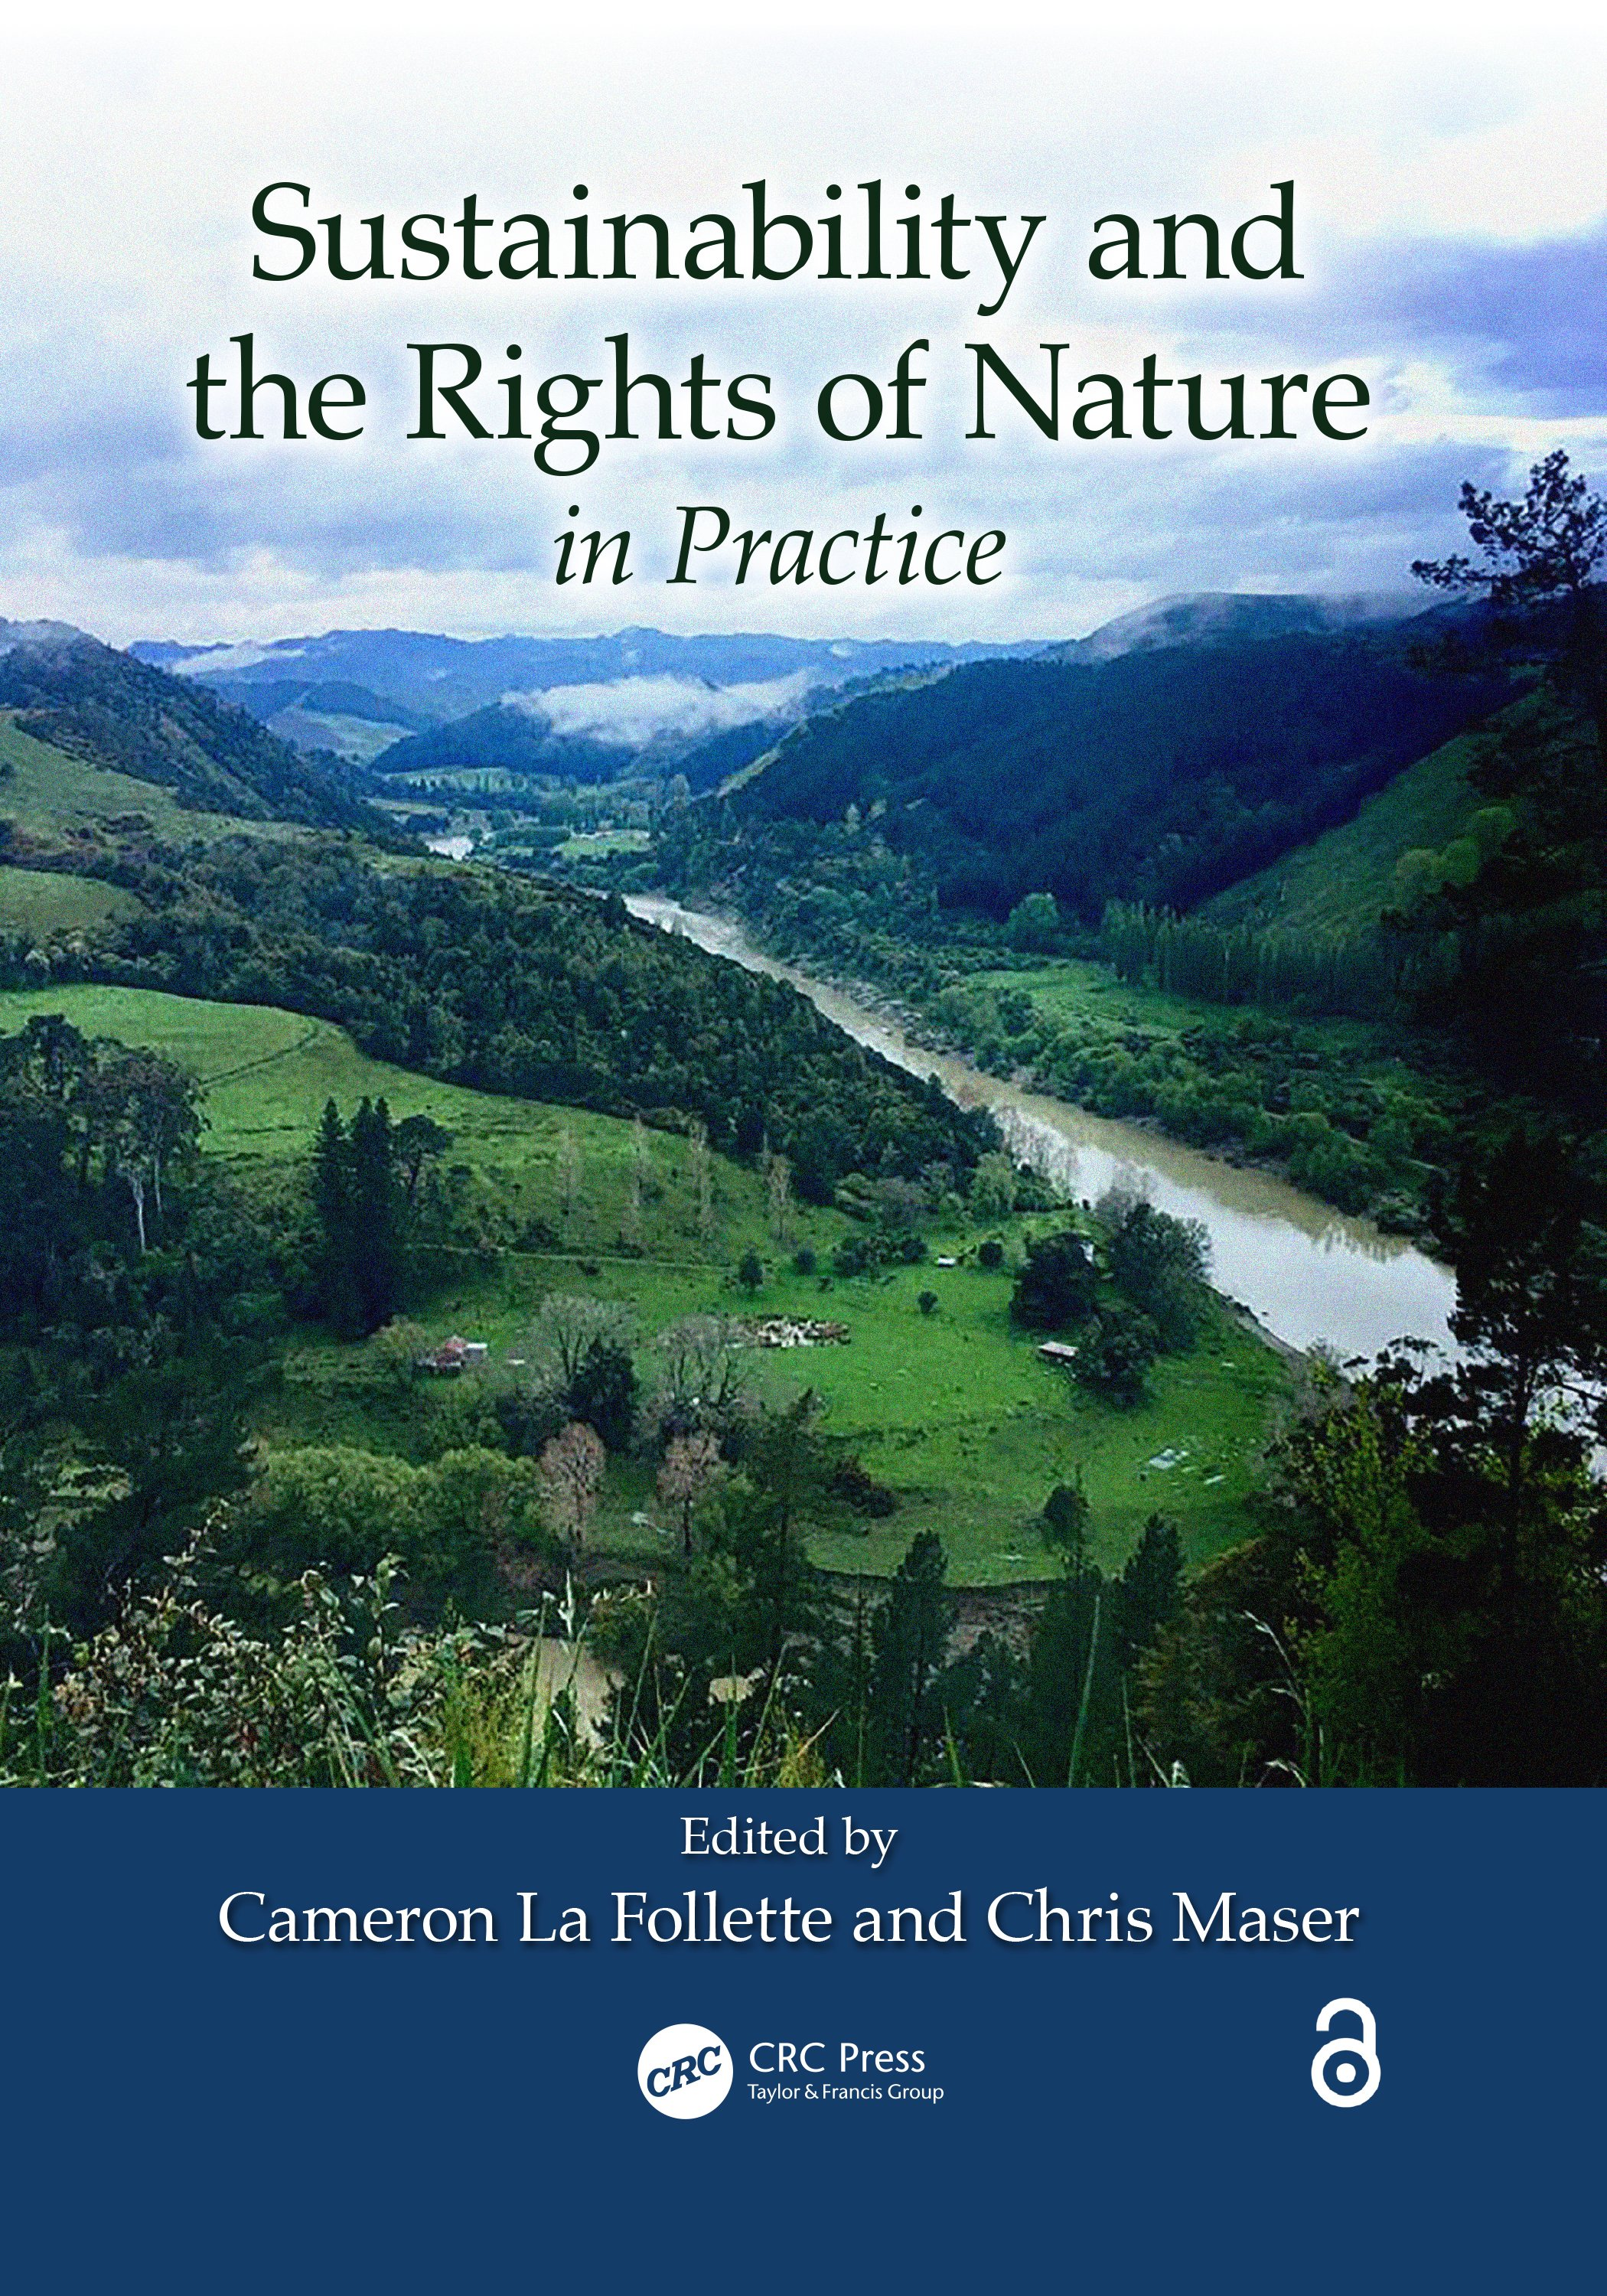 Sustainability and the Rights of Nature in Practice